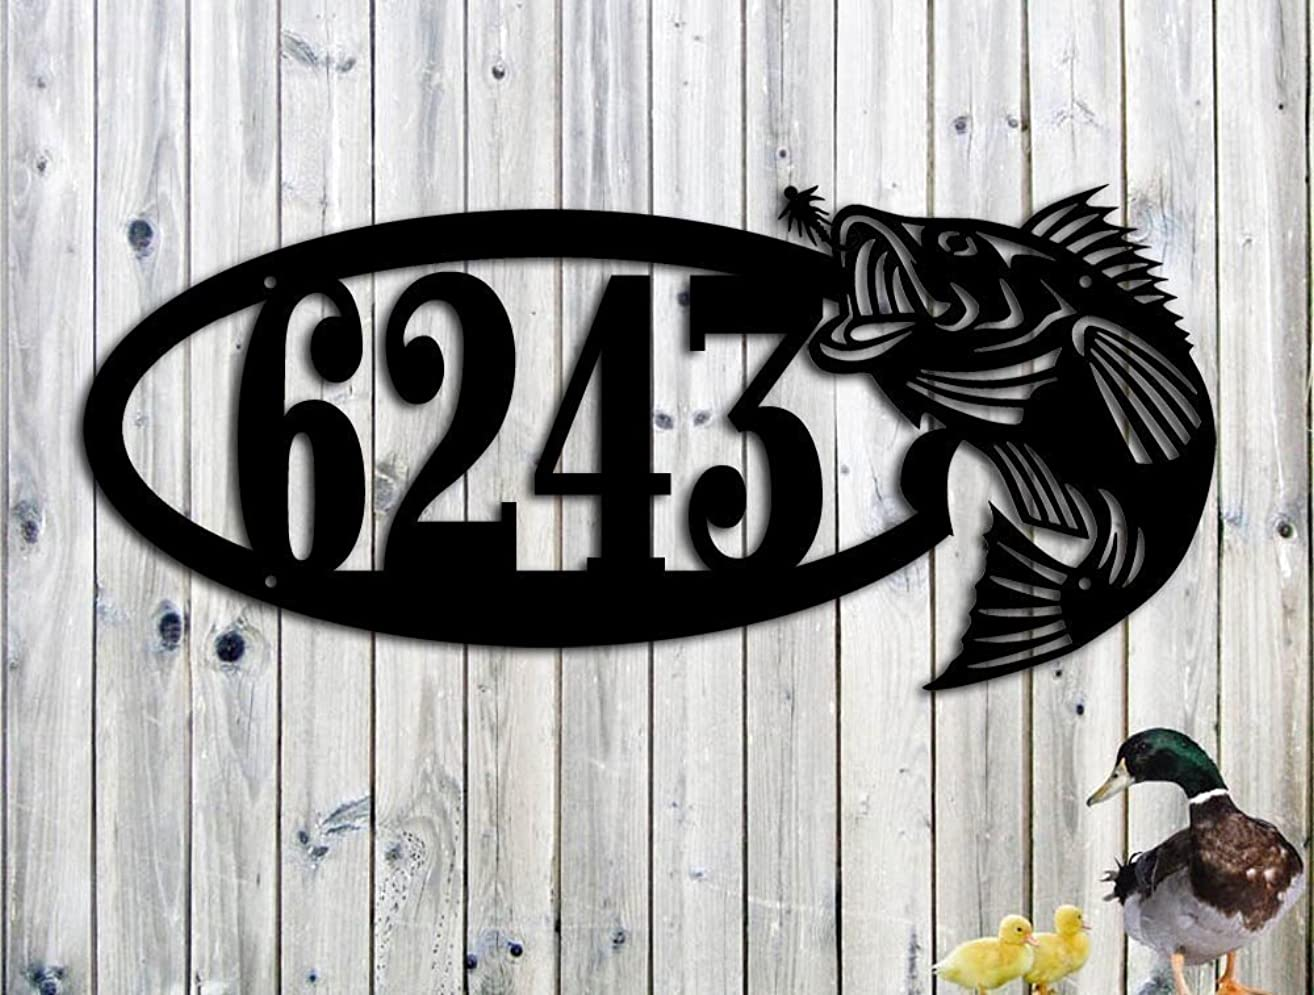 Large Mouth Bass Fish Custom address Lake House Sign 23 x 10 1/4 Fishing, Cabin Address Sign Father's Day Gift Garden Art Man Cave Bar Fishing Sign Made IN USA